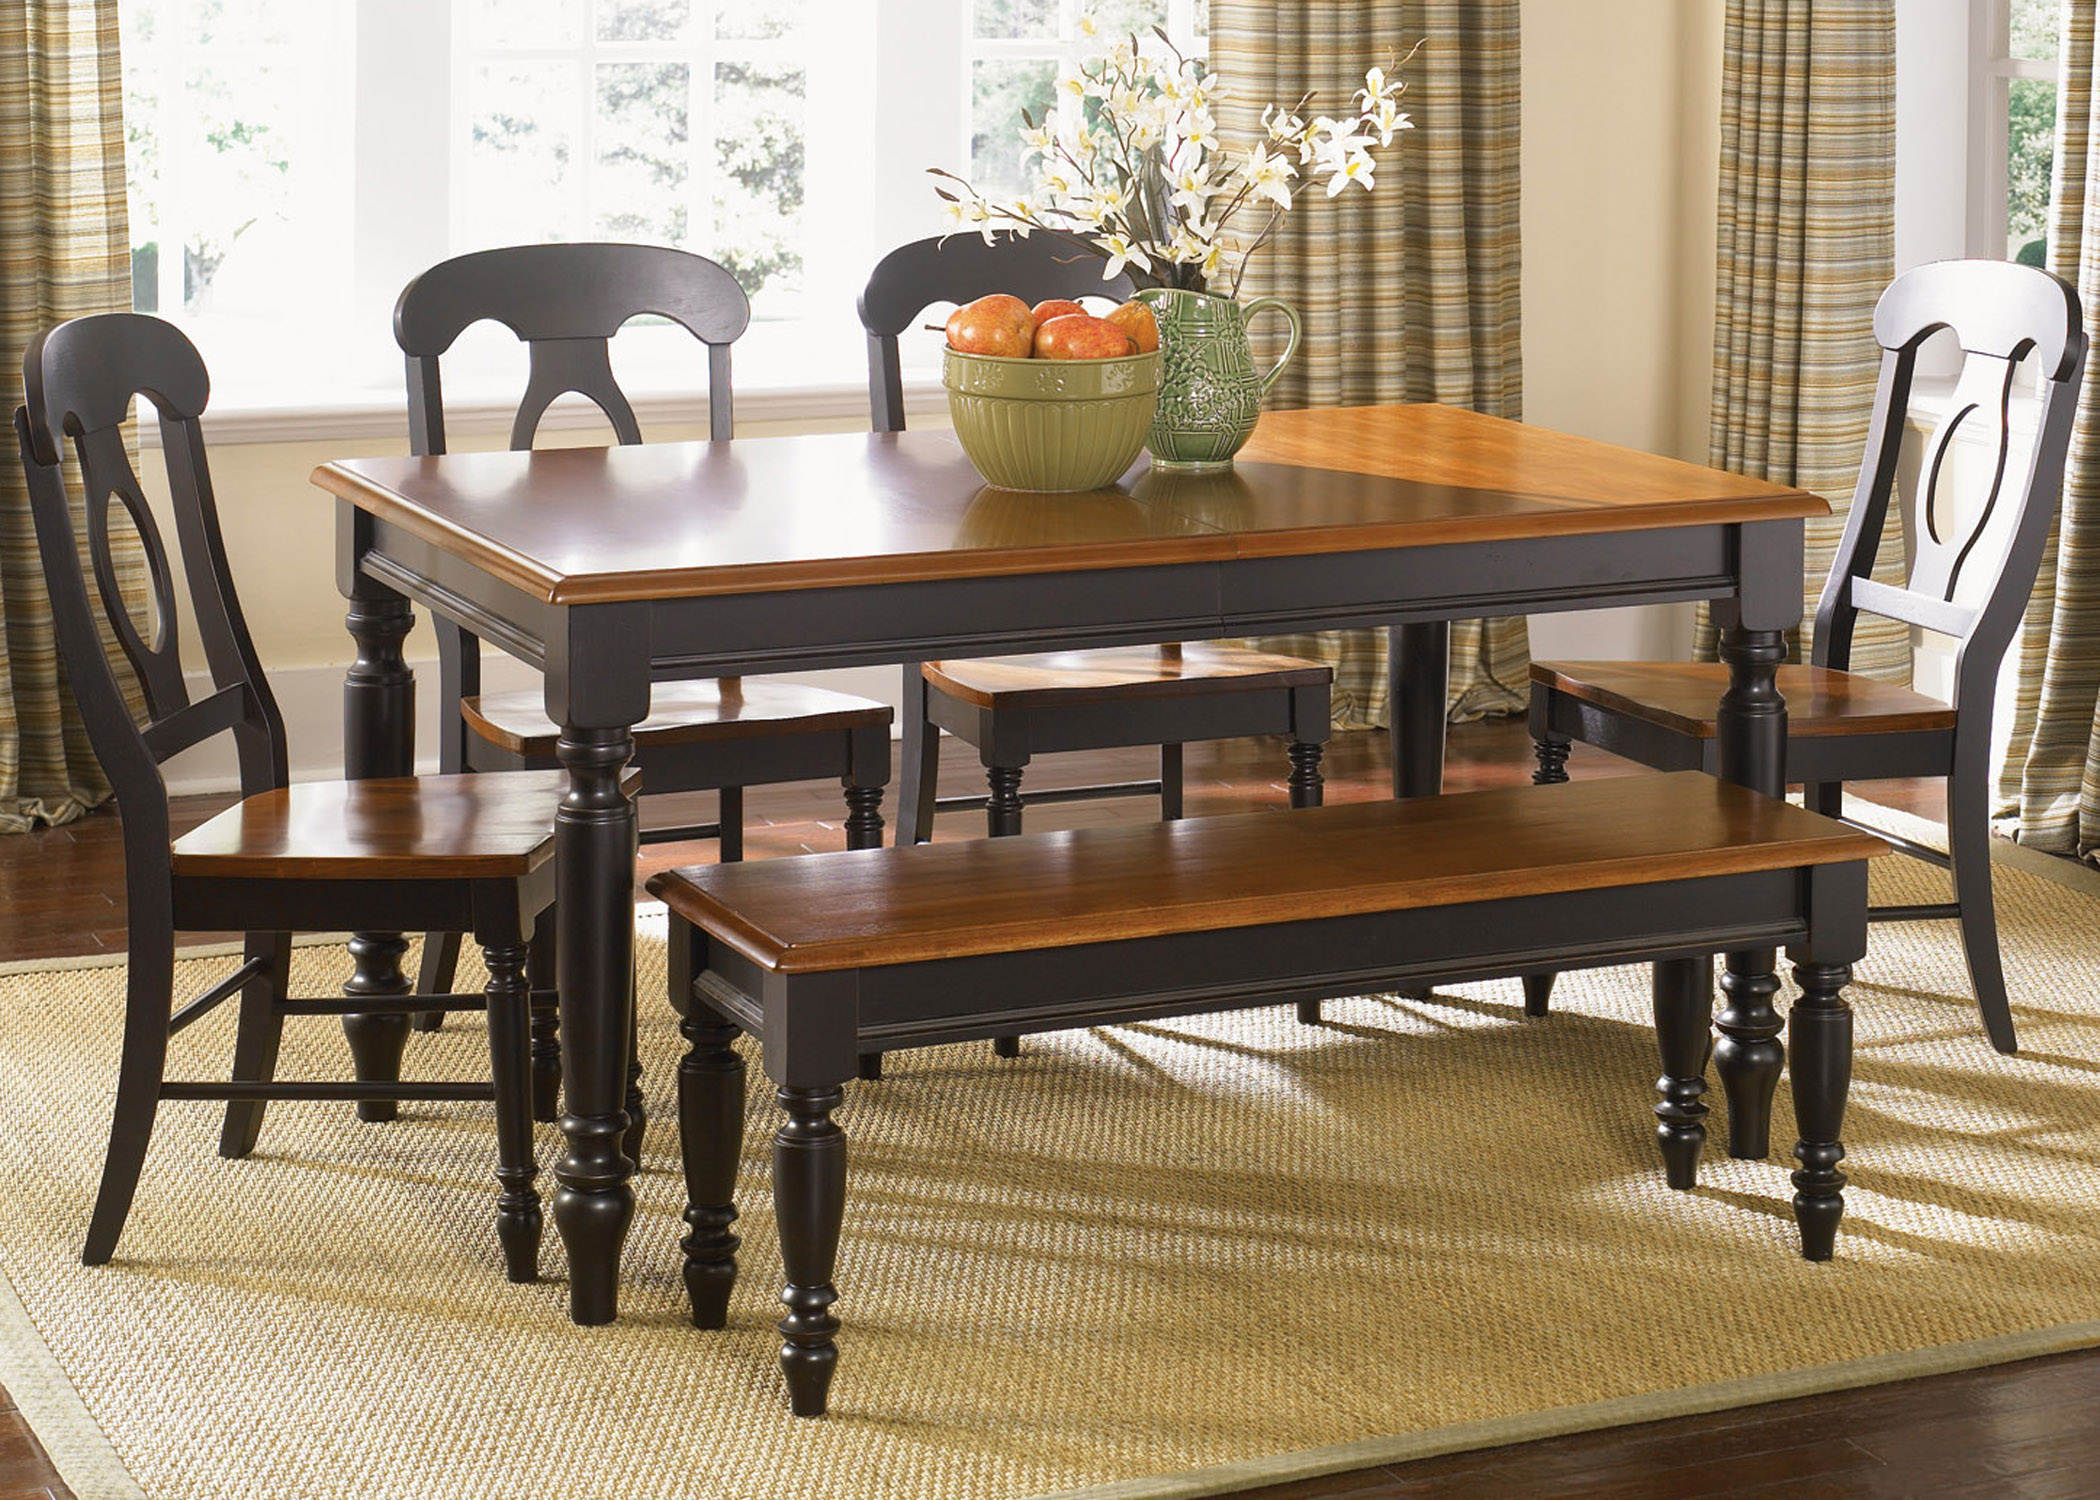 Liberty Low Country Black 6pc Dining Room Set with Bench